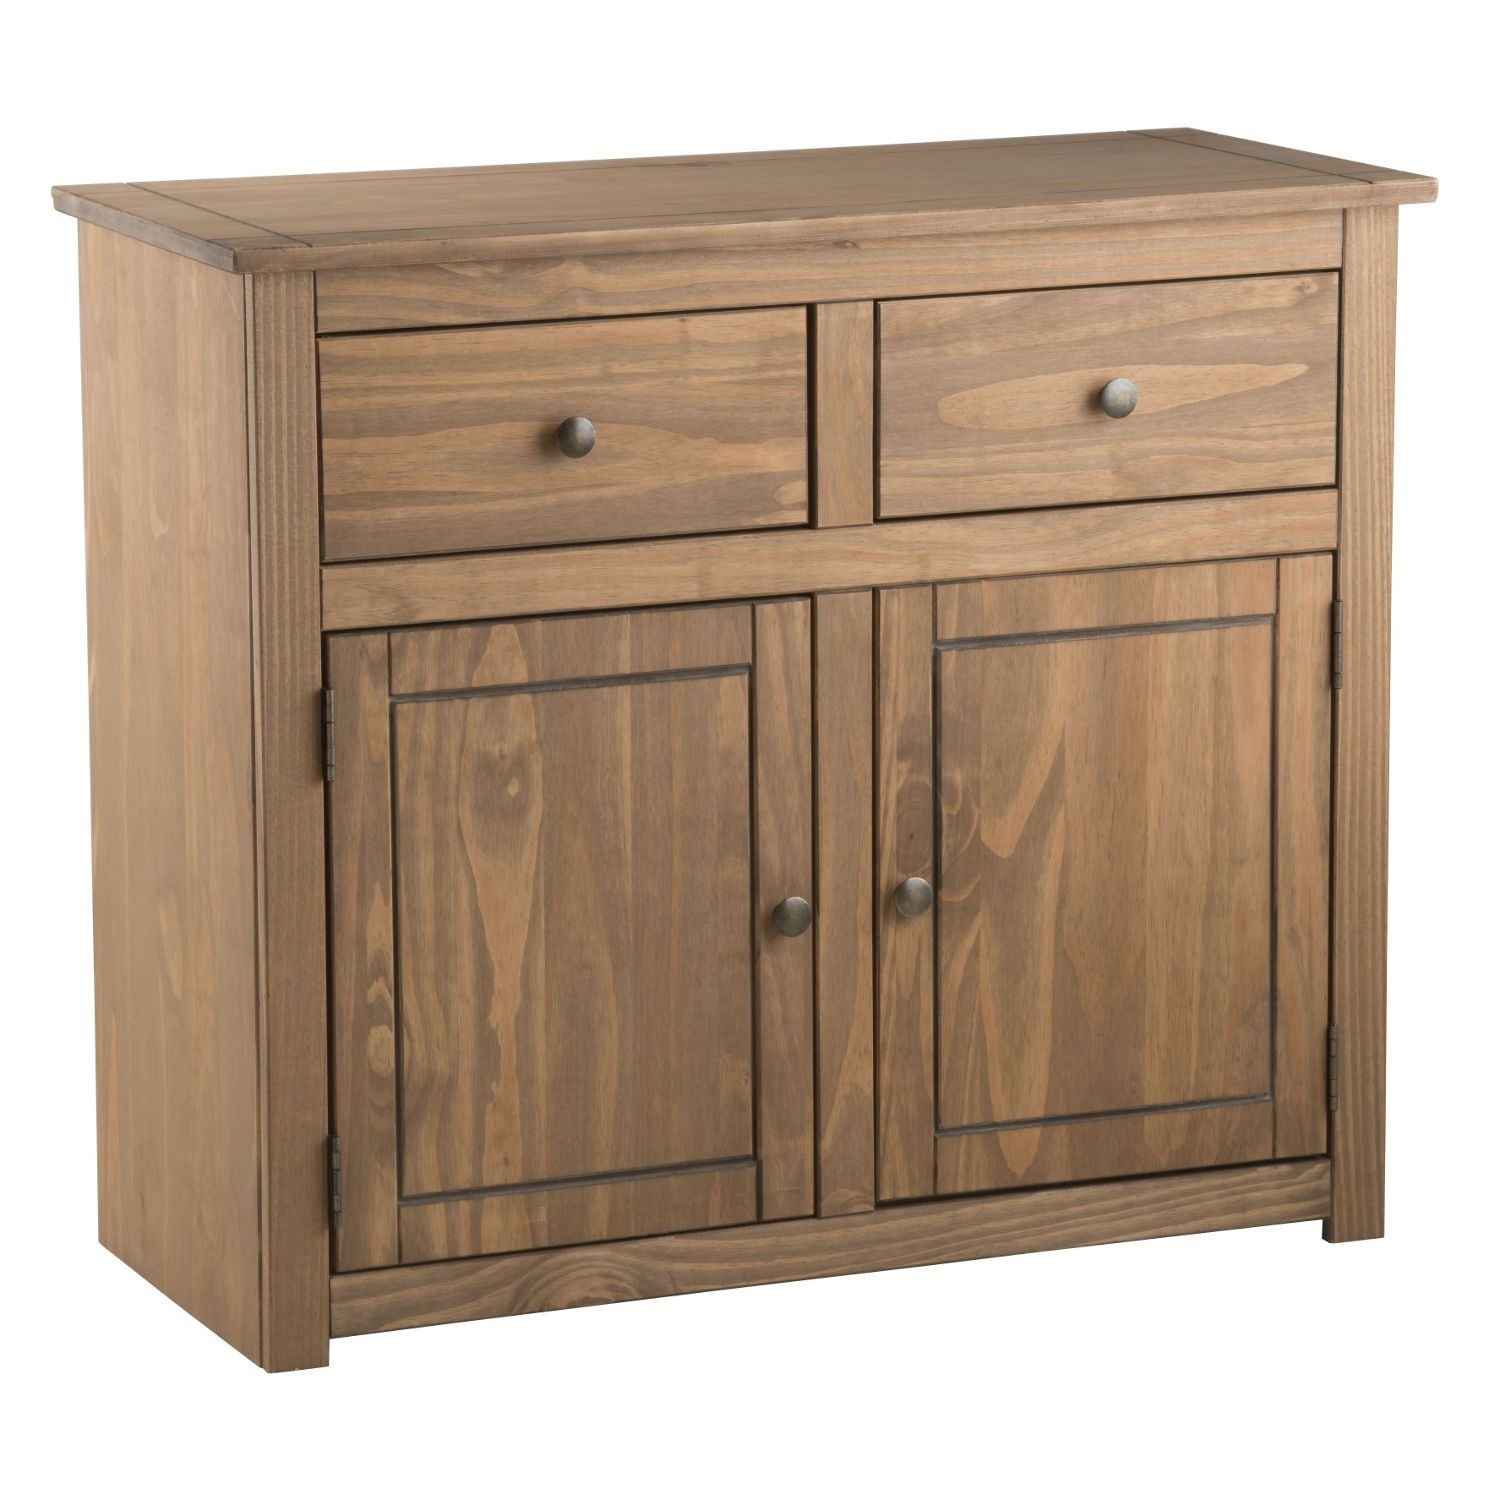 Santiago 2 Door 2 Drawer Sideboard – Next Day Delivery Santiago 2 Inside Most Current 2 Drawer Sideboards (#13 of 20)